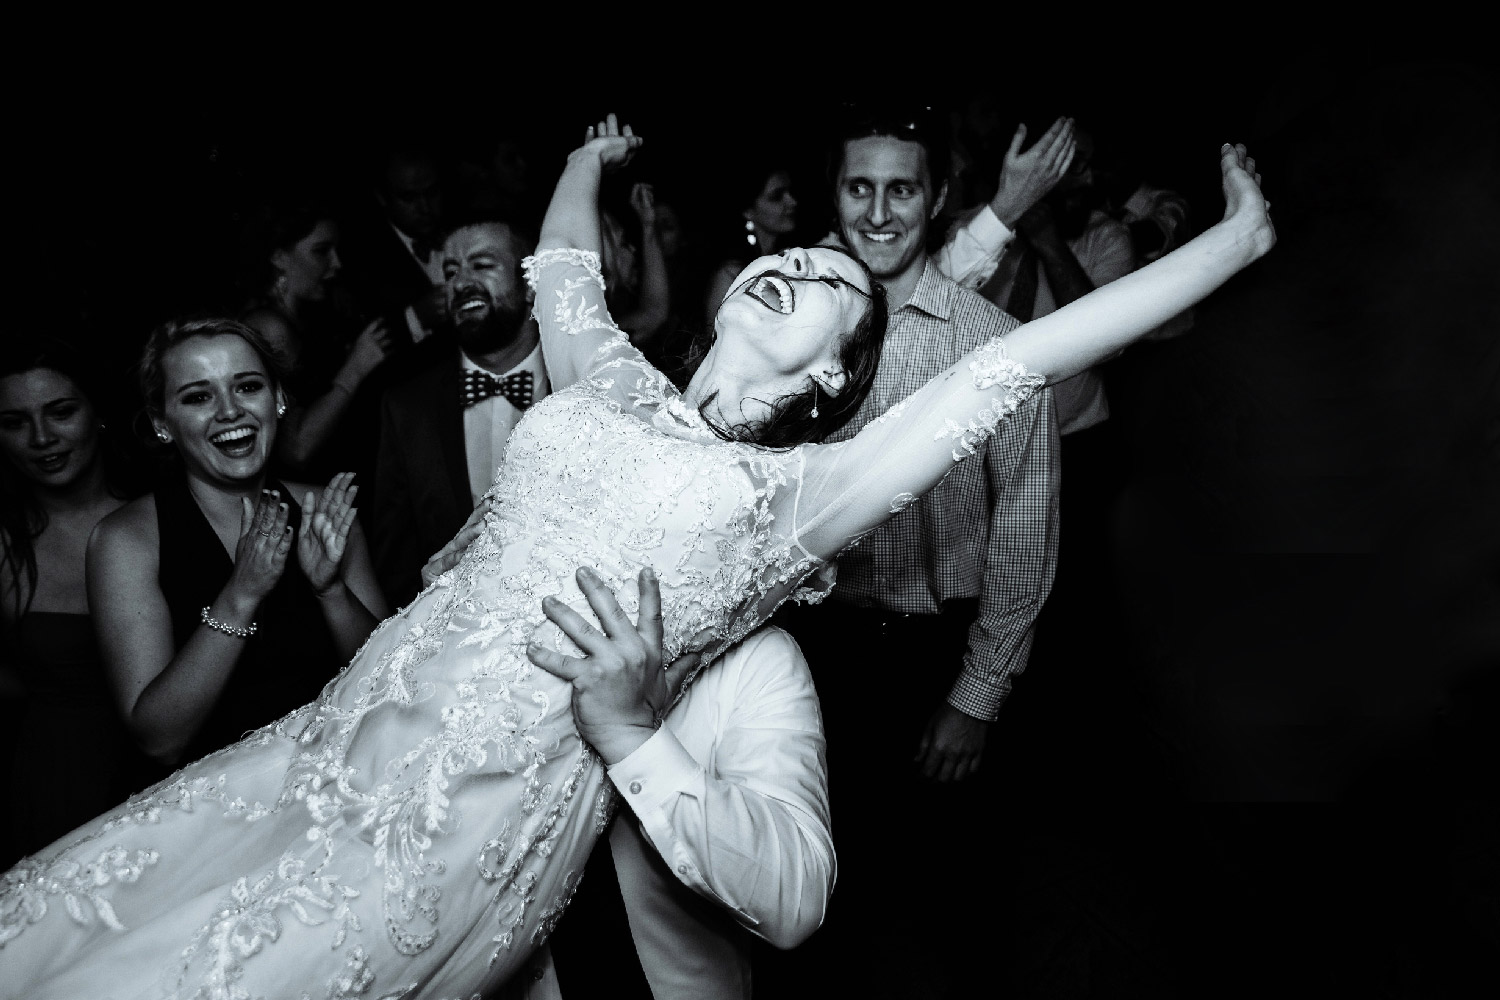 Wedding guests lift bride in long-sleeved lace wedding dress up in air on dance floor at reception Buffalo Upstate New York Wedding Photographer Jacqueline Connor Photography